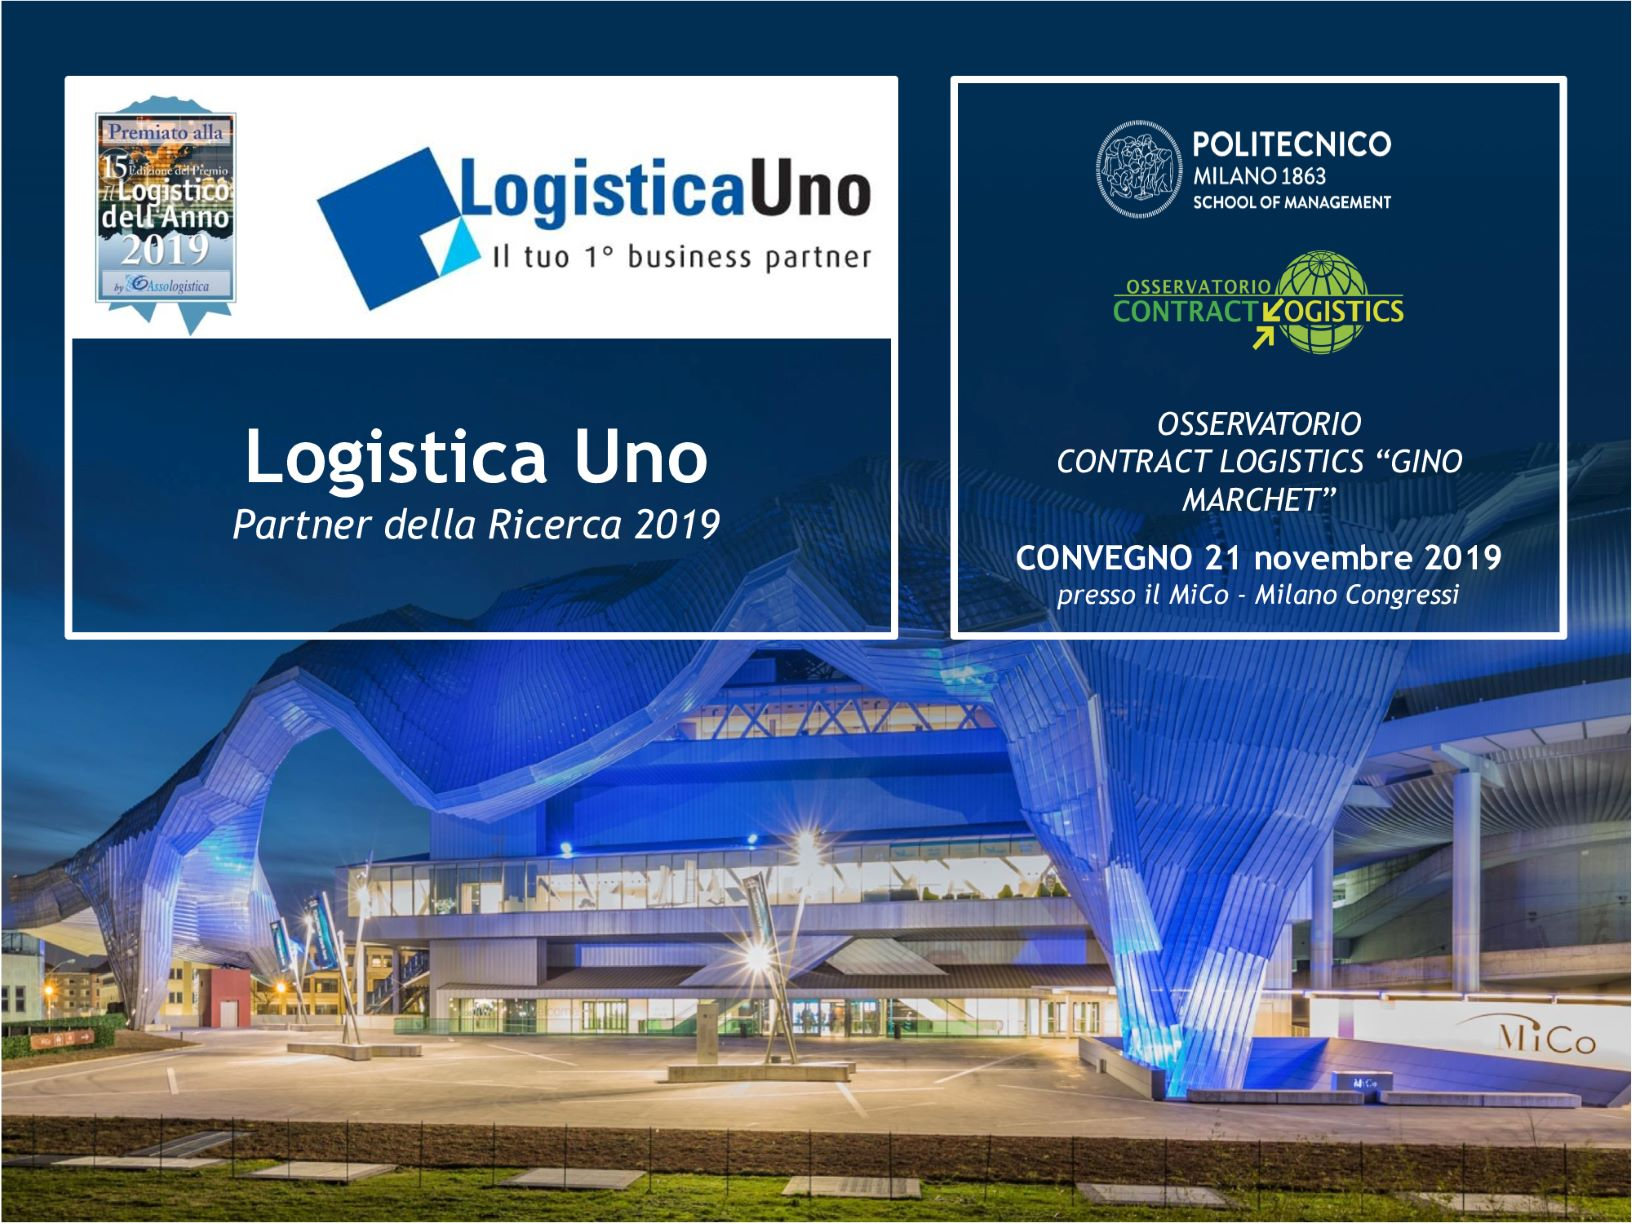 CONTRACT LOGISTICS OBSERVATORY CONFERENCE 2019